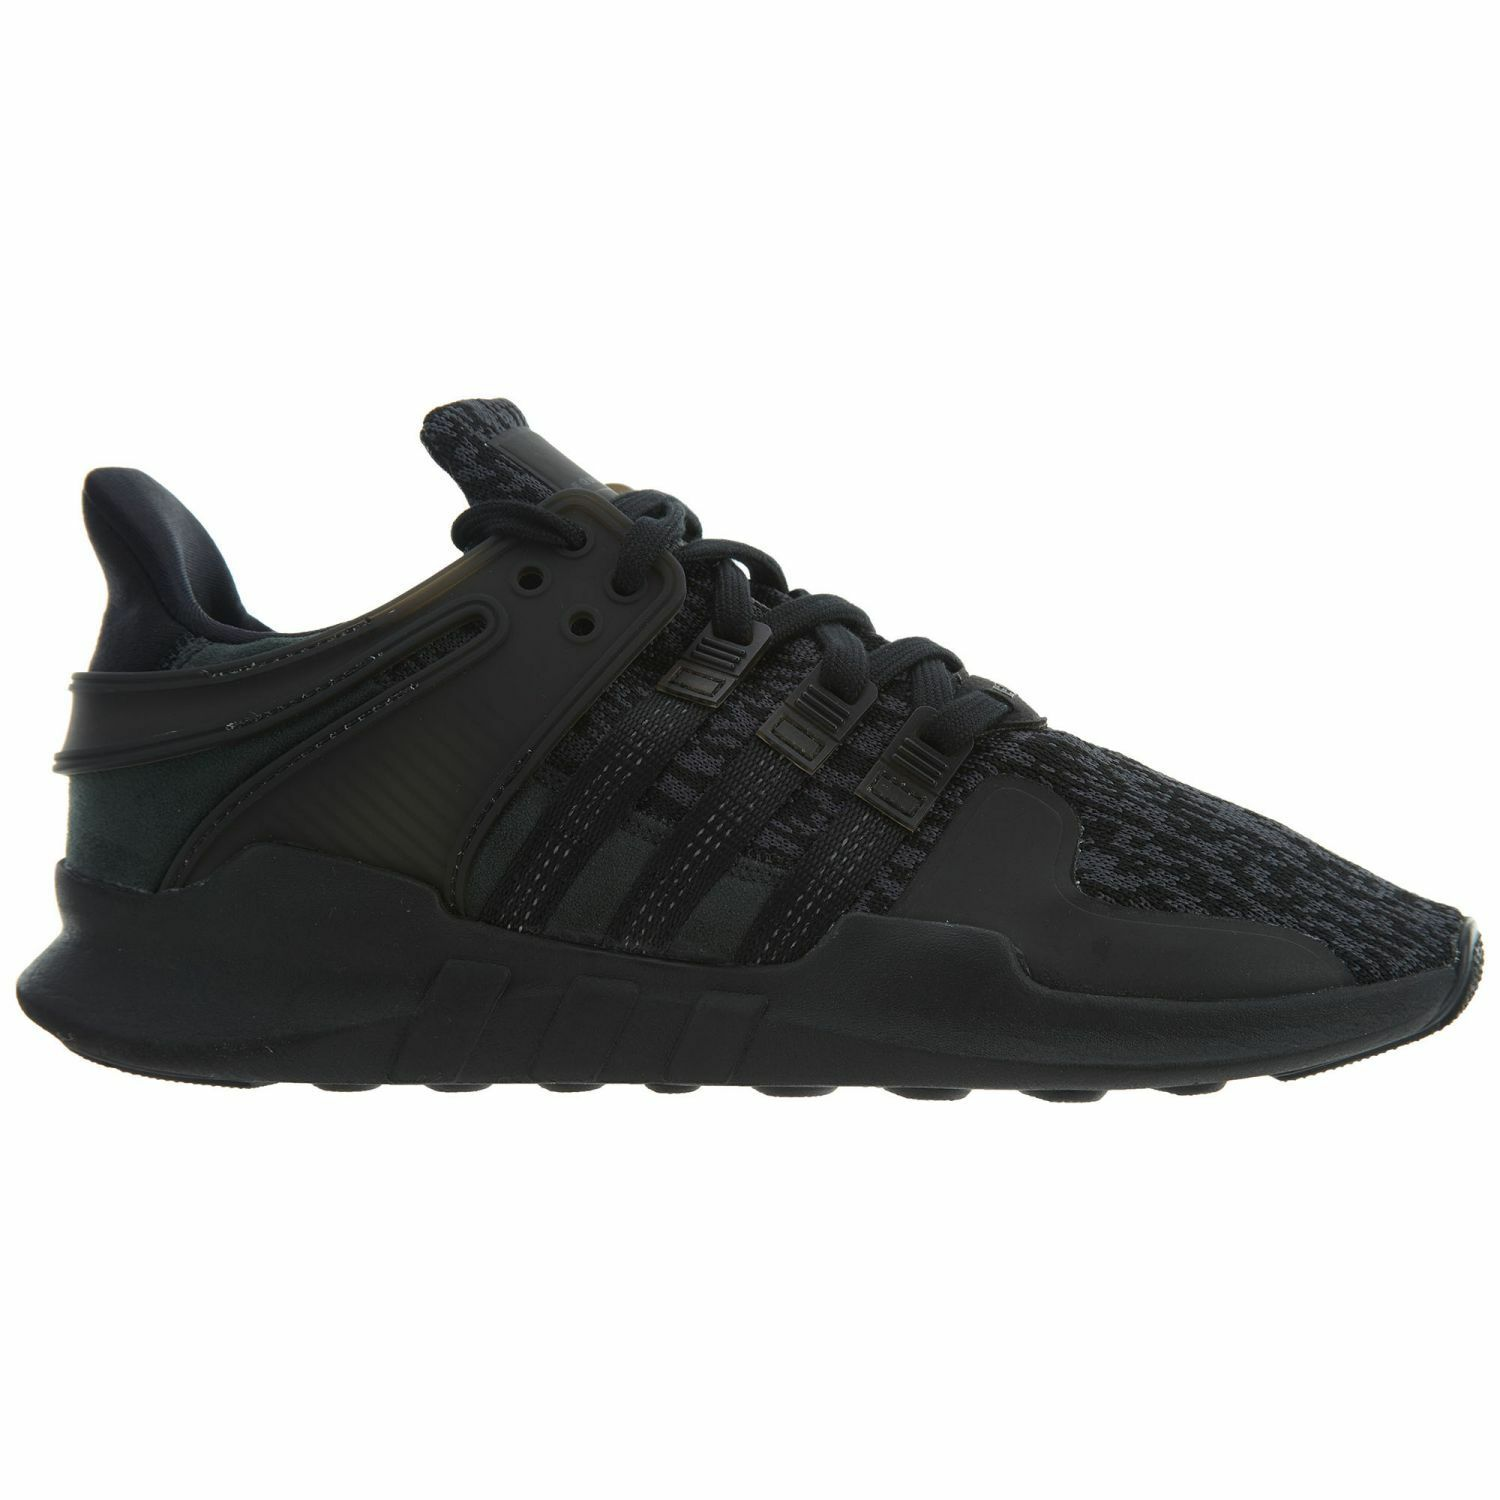 Adidas EQT Support Adv Mens BY9589 Black Pixel Knit Athletic Shoes Comfortable